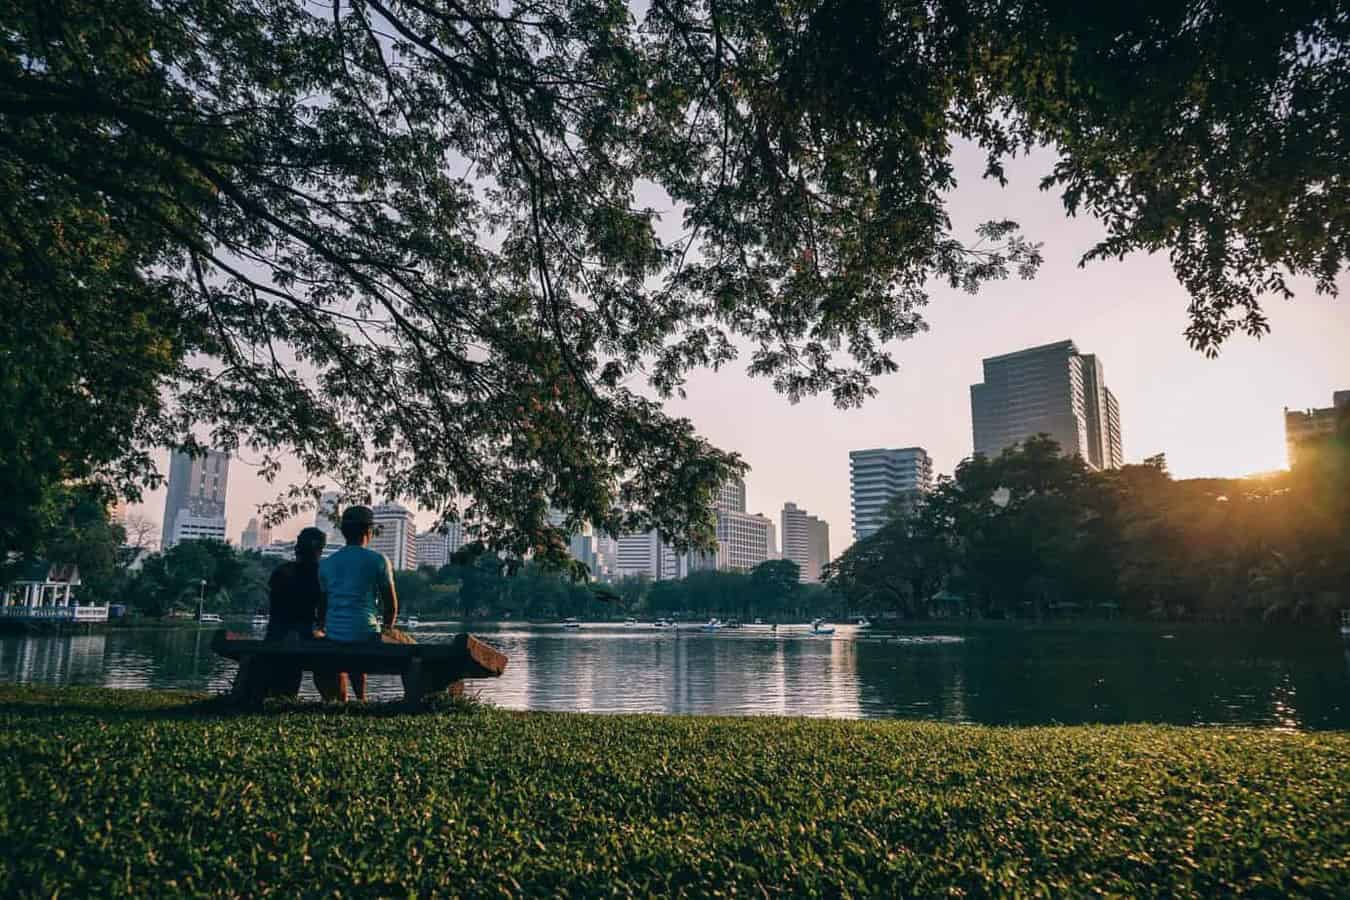 City parks lift mood as much as Christmas, Twitter study shows